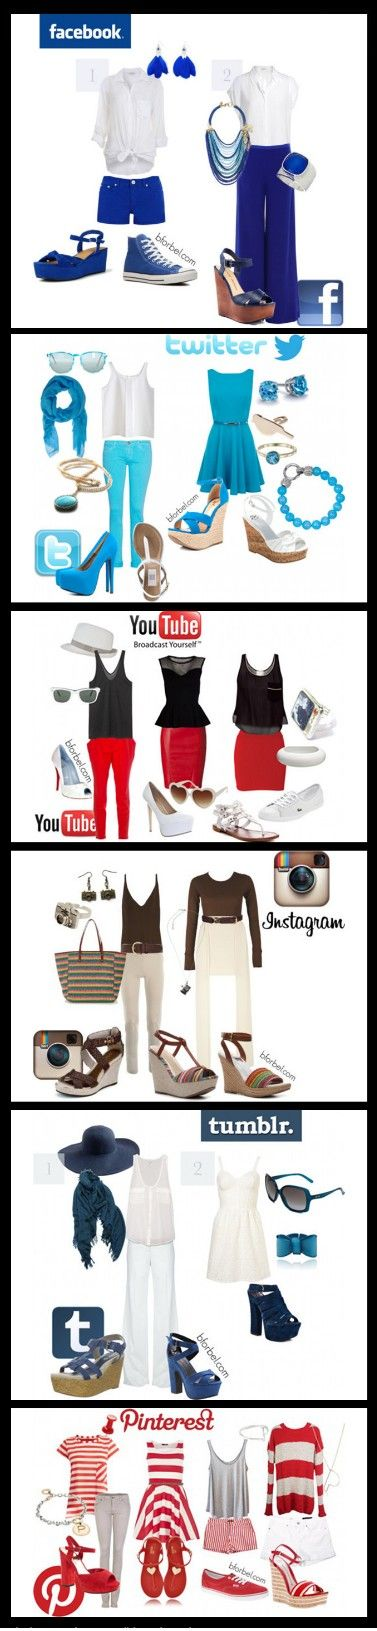 #infographic Choose a suitable outfit... op deze feestdag = PIN-I-A2iC_be_8465